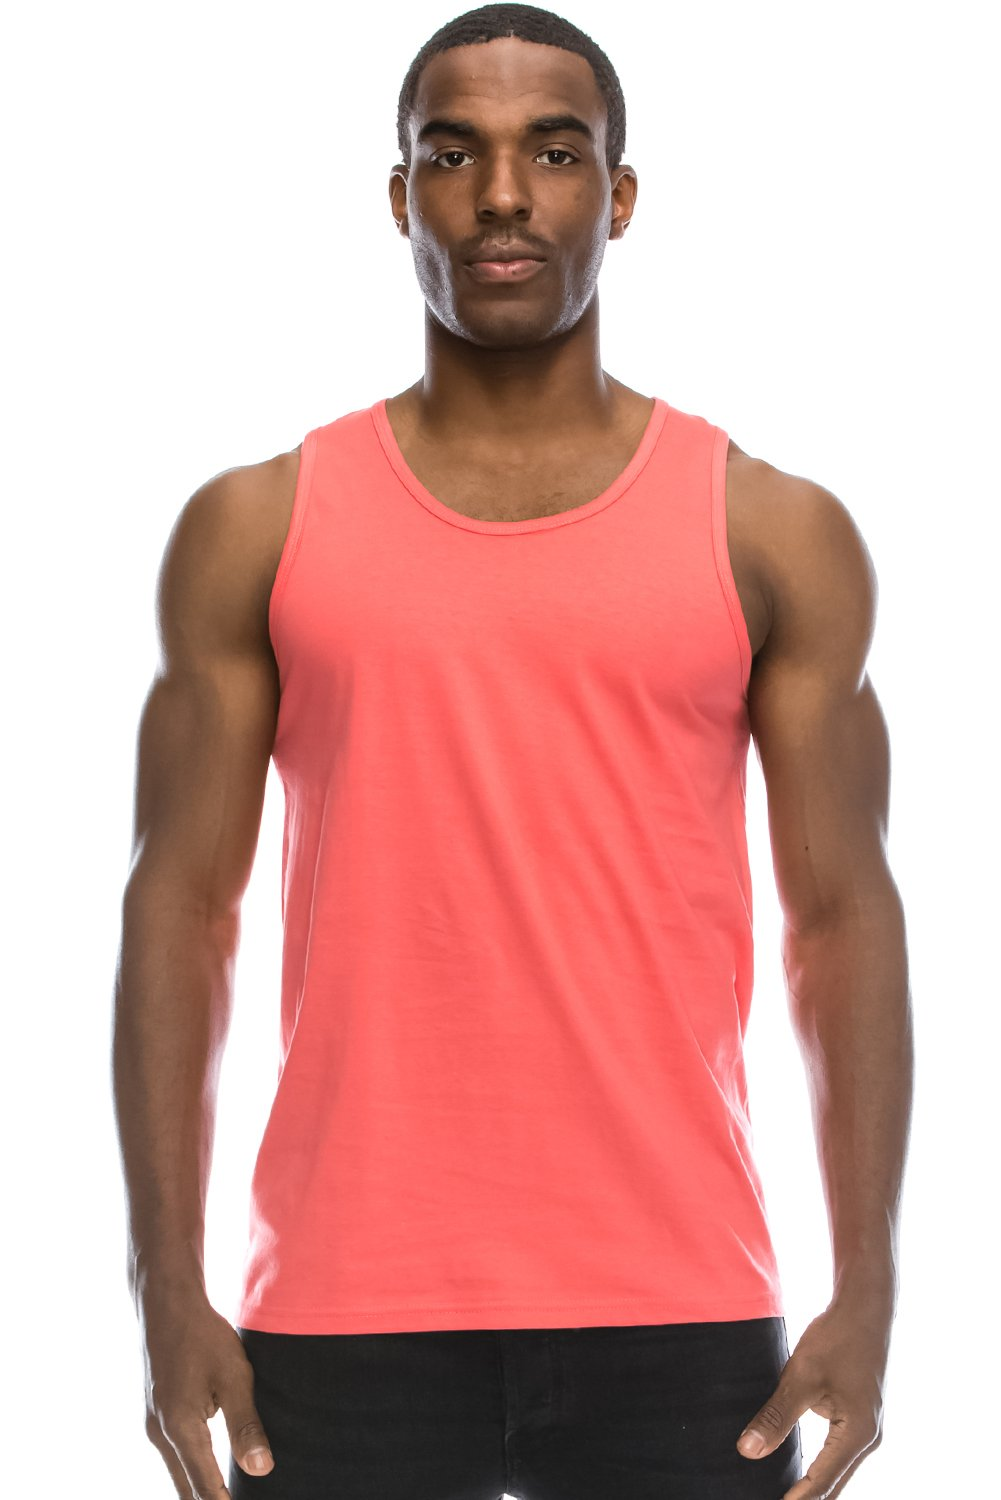 dbe47b8b74d5b2 JC DISTRO Mens Hipster Hip Hop Basic Workout Solid Coral Tank Top ...